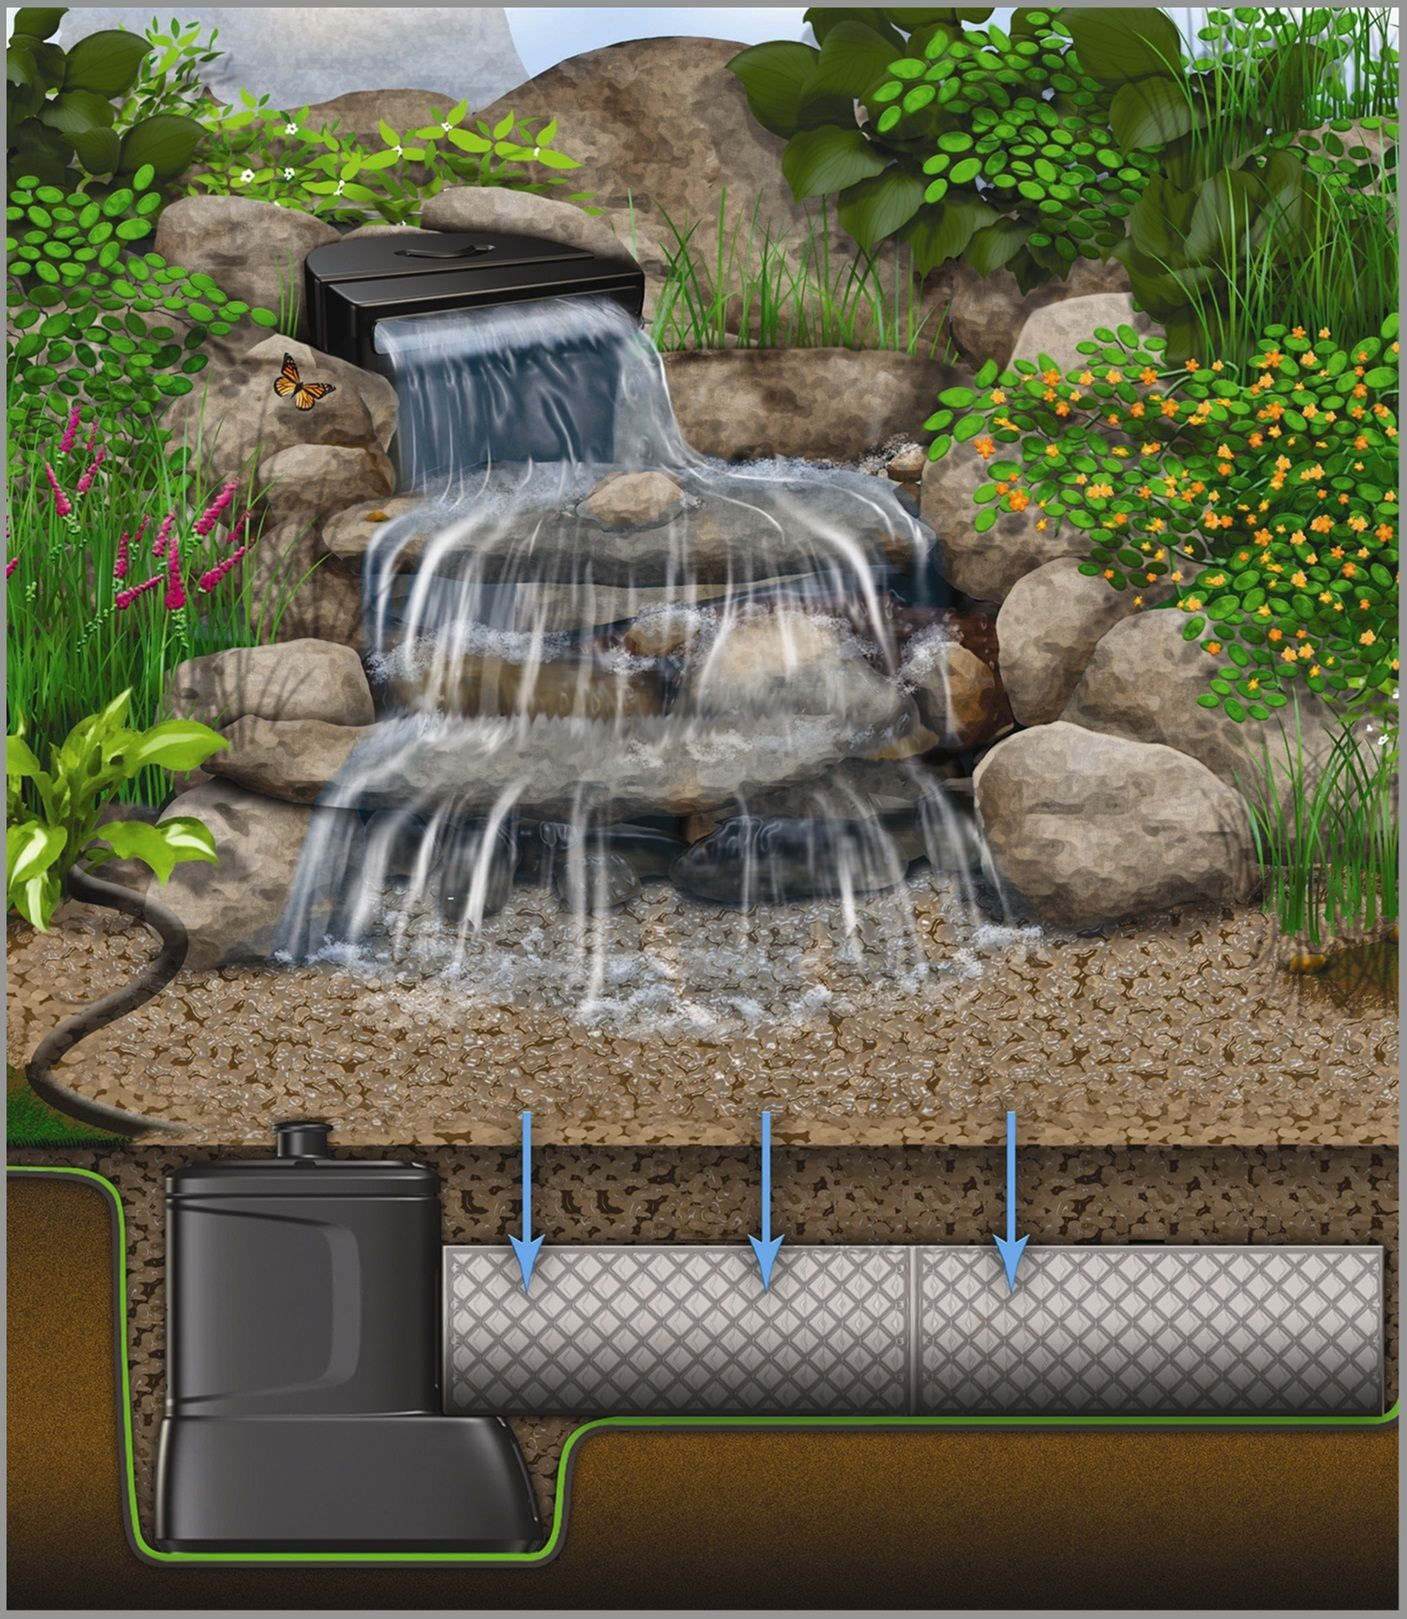 ondless Water Features A Cross Section Diagram of a Pondless